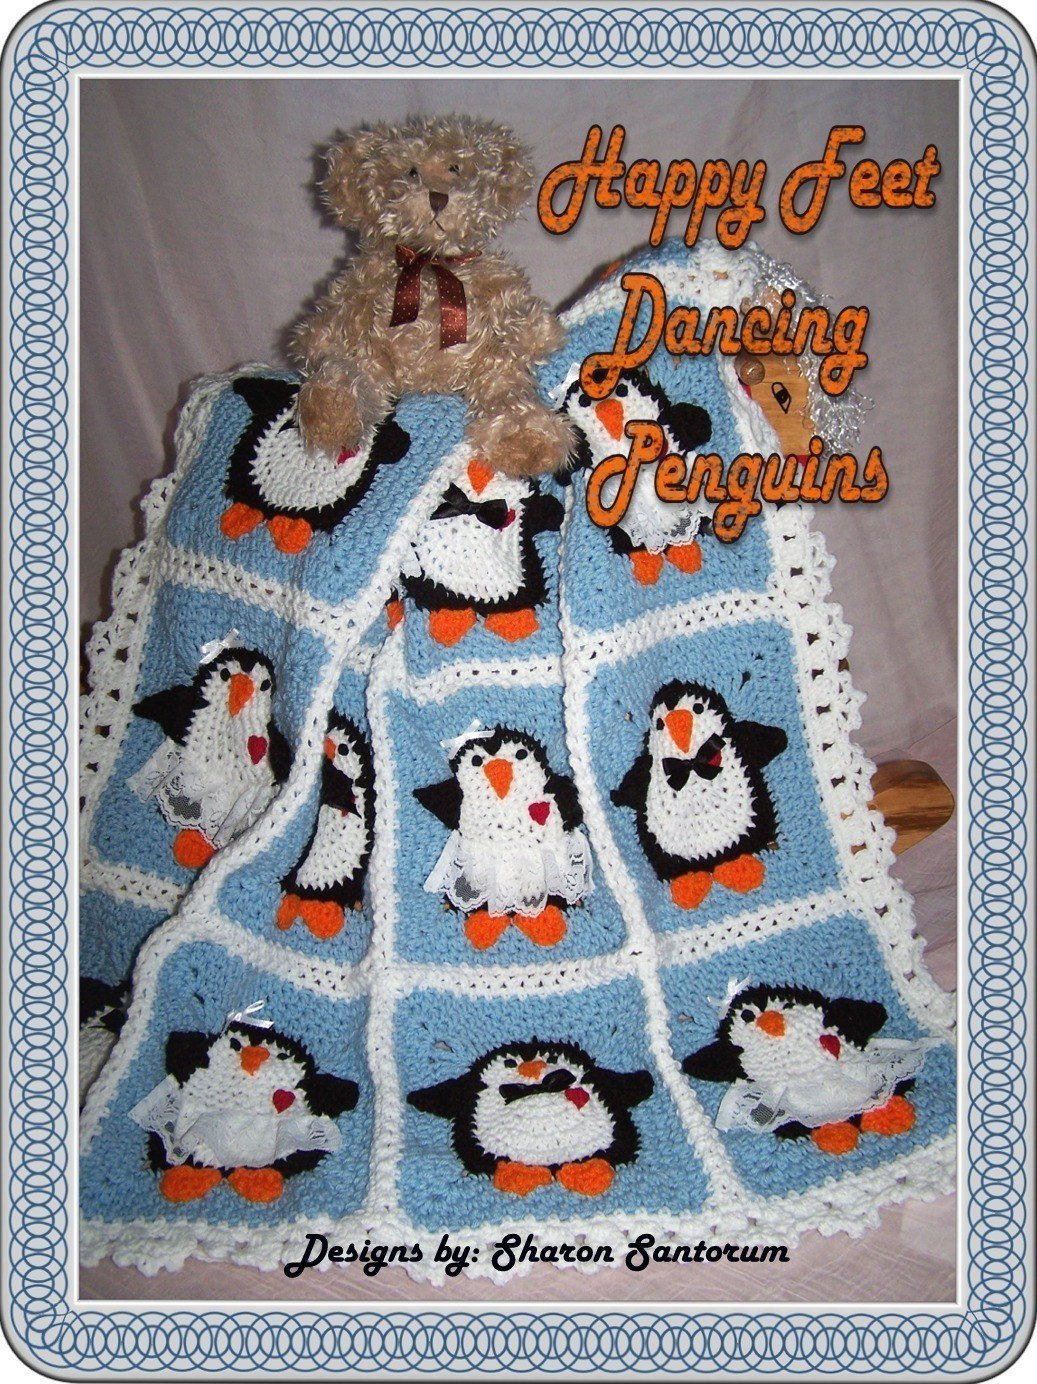 Baby Boy Crochet Blanket Patterns Beautiful Dancing Penguins Crochet Baby Afghan or Blanket Pattern Pdf Of Baby Boy Crochet Blanket Patterns Luxury Baby Blanket with Cabled Border Crochet Pattern